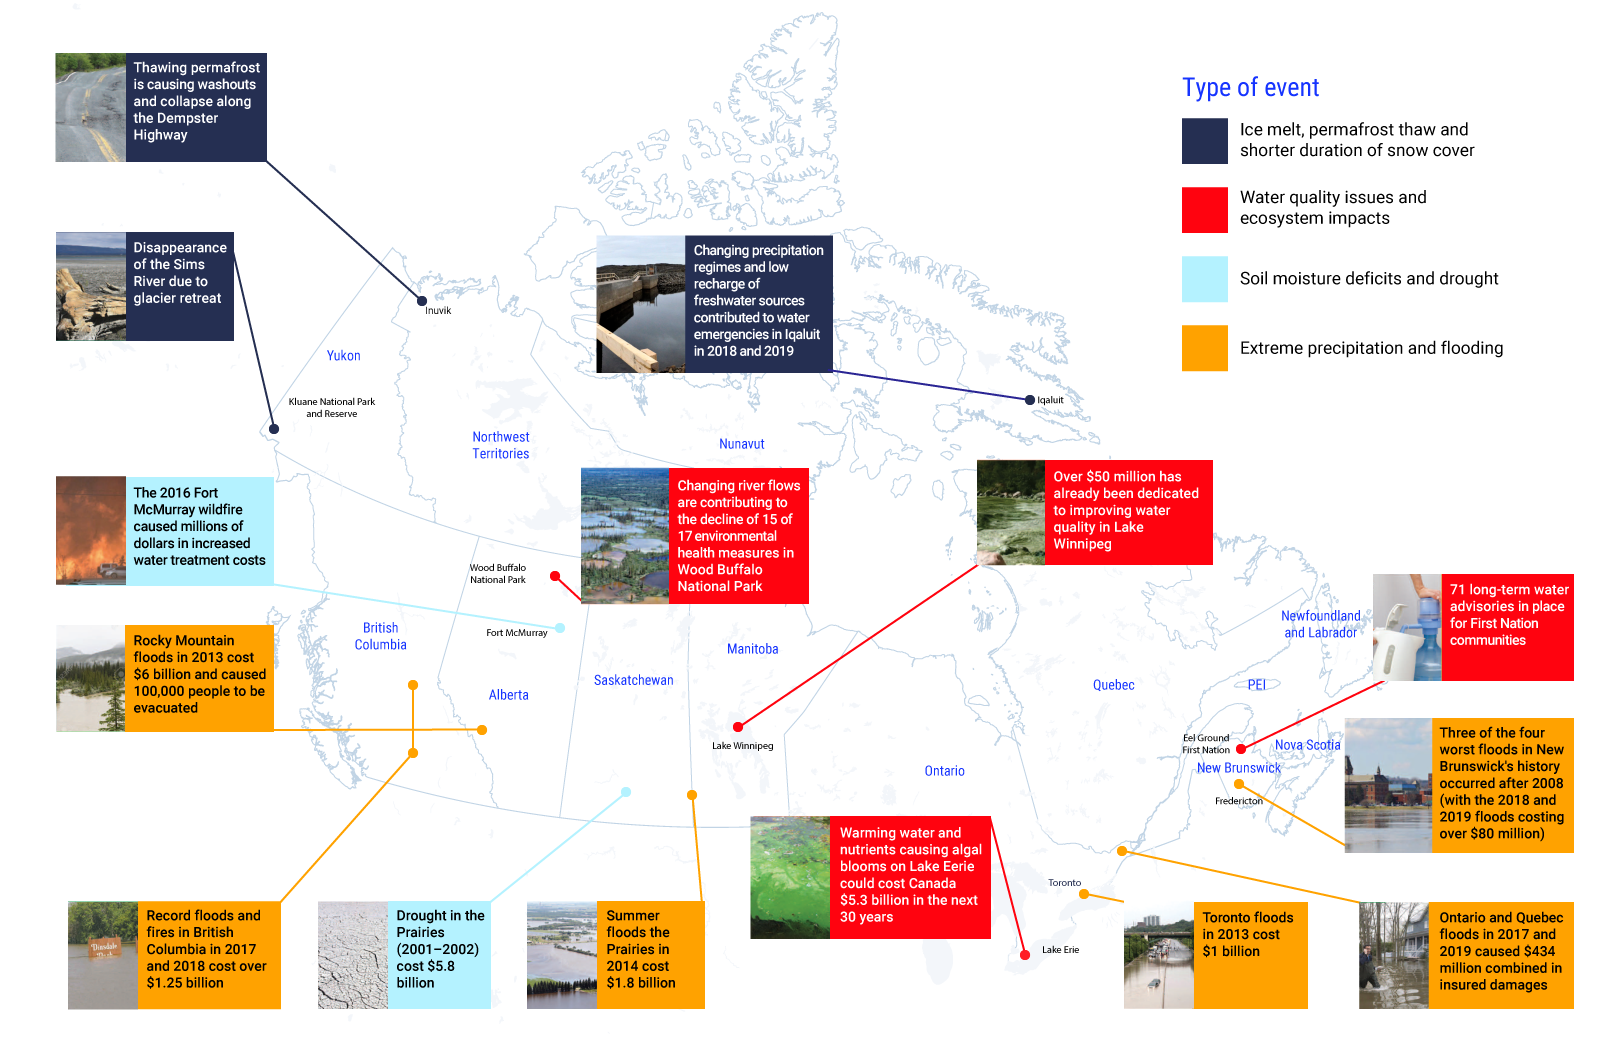 Map of Canada with short descriptions of water resource events across the country. The types of events include ice melt, permafrost thaw and shorter duration of snow cover, water quality issues and ecosystem impacts, soil moisture deficits and drought, and extreme precipitation and flooding.